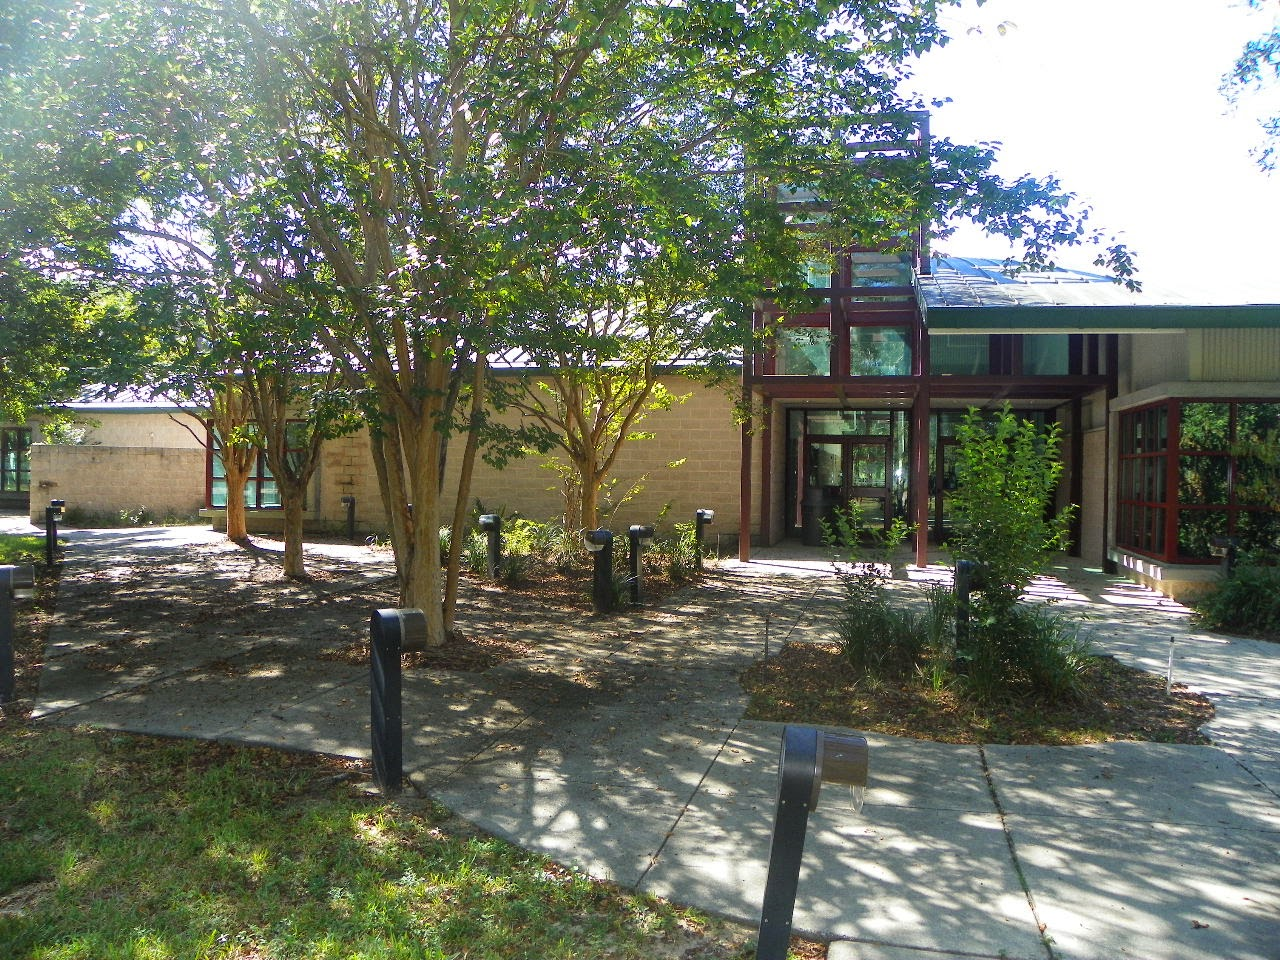 Vickrey Resource Center in Pensacola, FL 32503